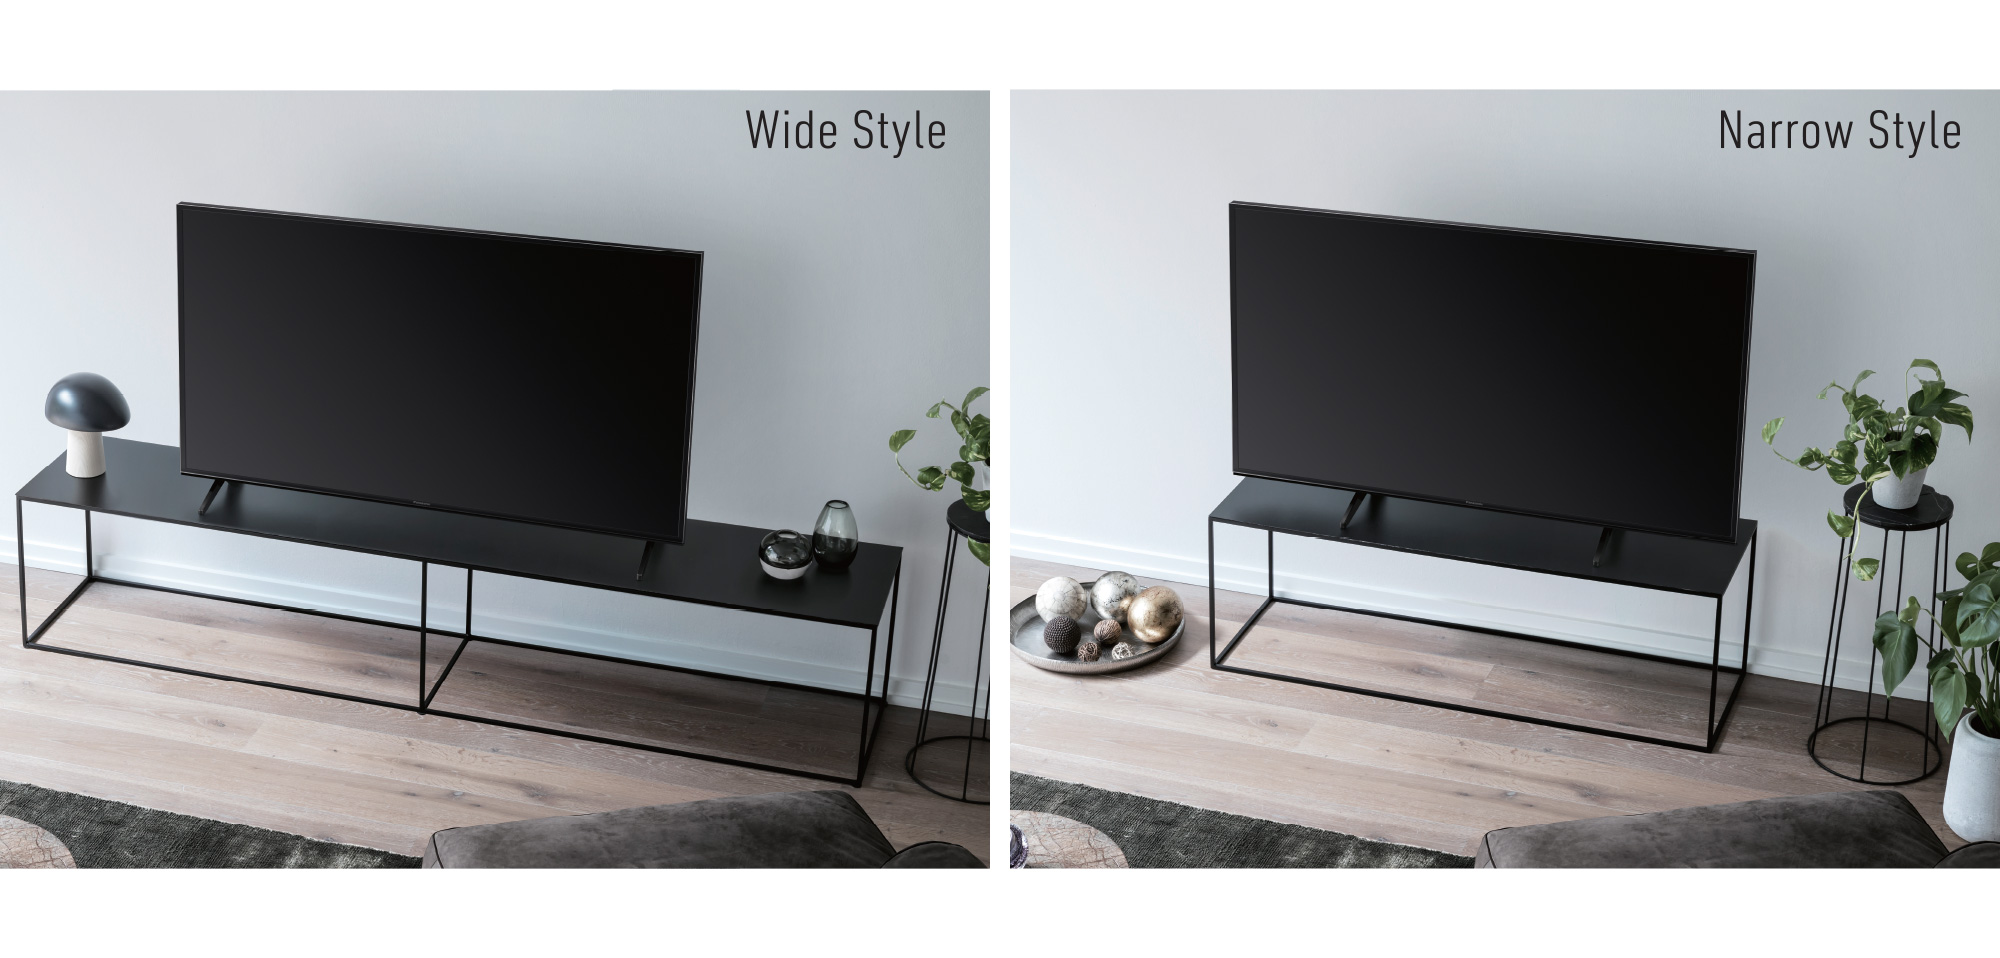 OLED - FX600, SWITCH DESIGN*1, Wide or narrow — with two distinct styles in one Flexible Pedestal design, you can now change the look of your TV to match your room's interior, or match the size of your TV stand.